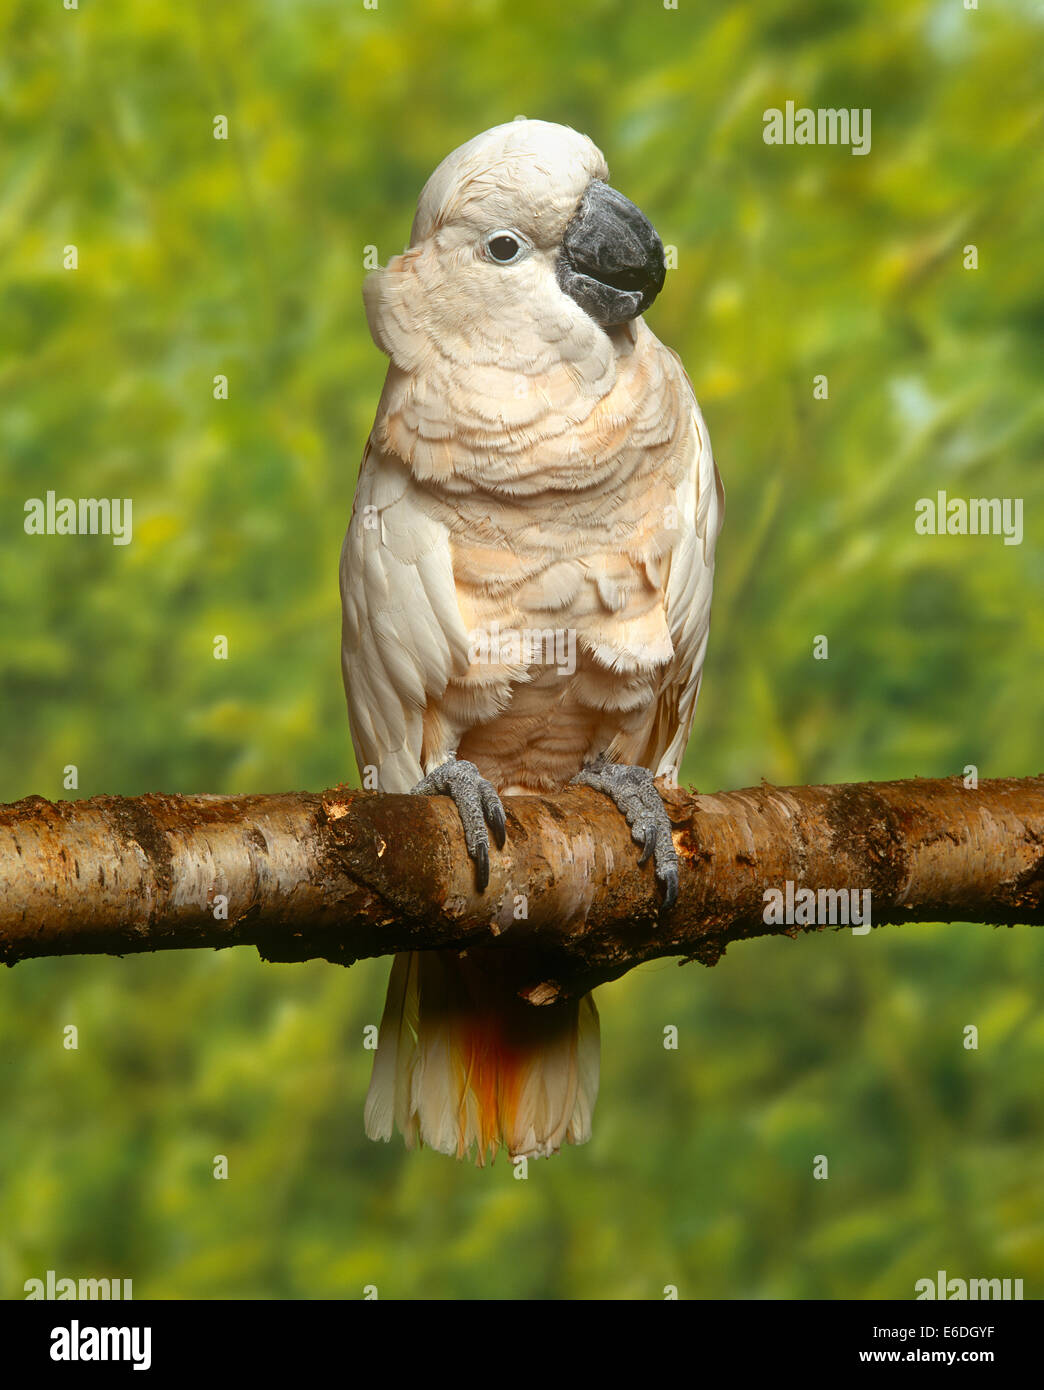 Cockatoo sitting on a tree branch - Stock Image